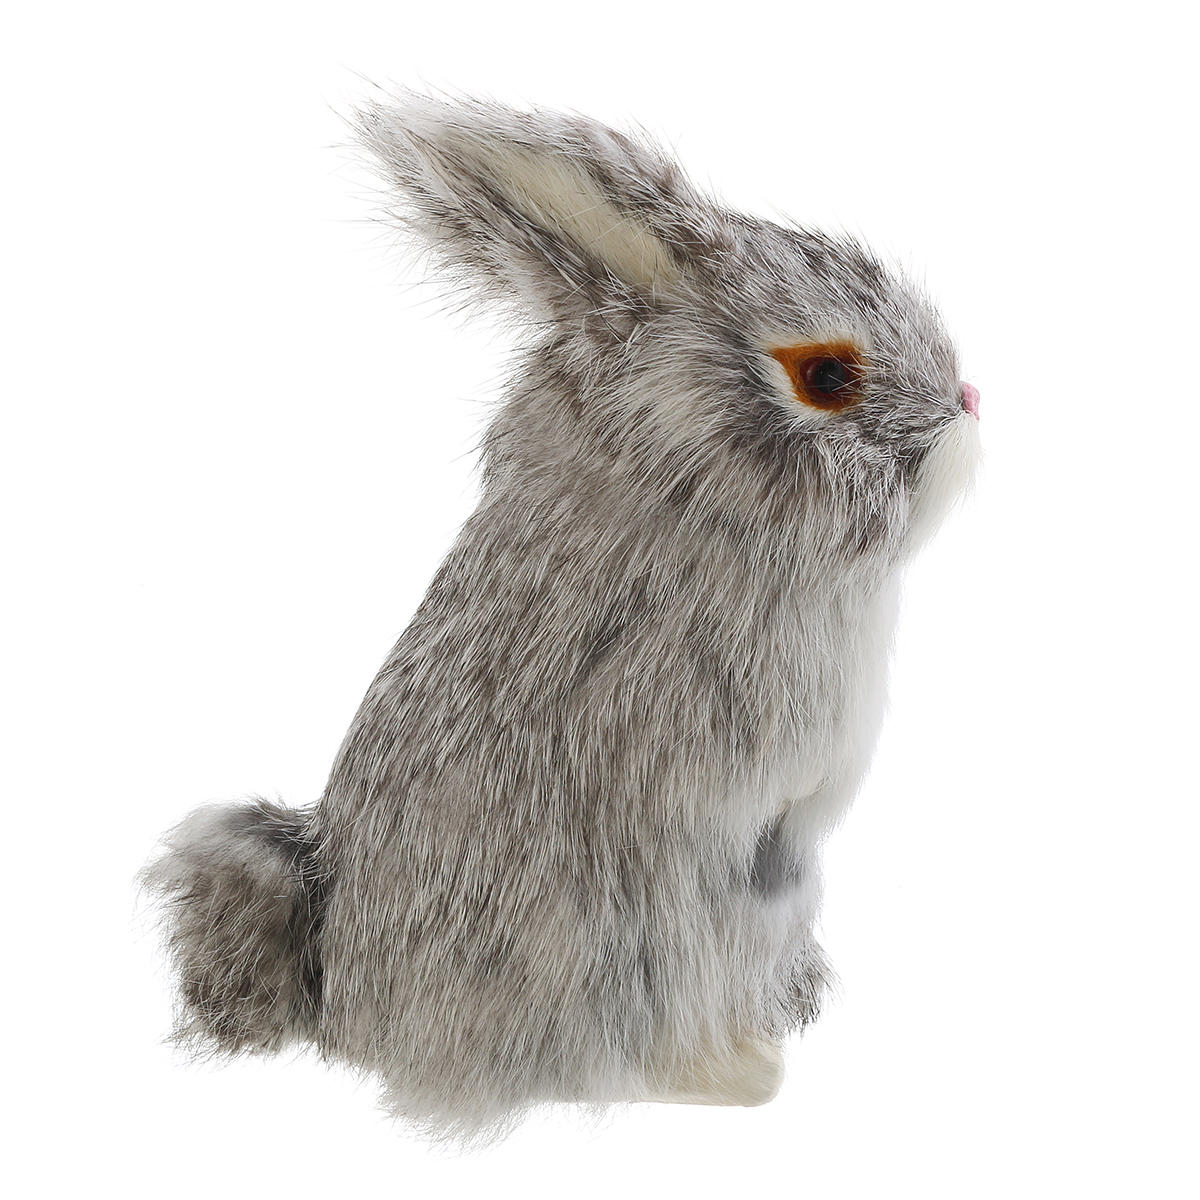 Gray/Yellow/Brown/White Rabbits Handmade Easter Bunnies Home Decorations Desktop Ornament - 6